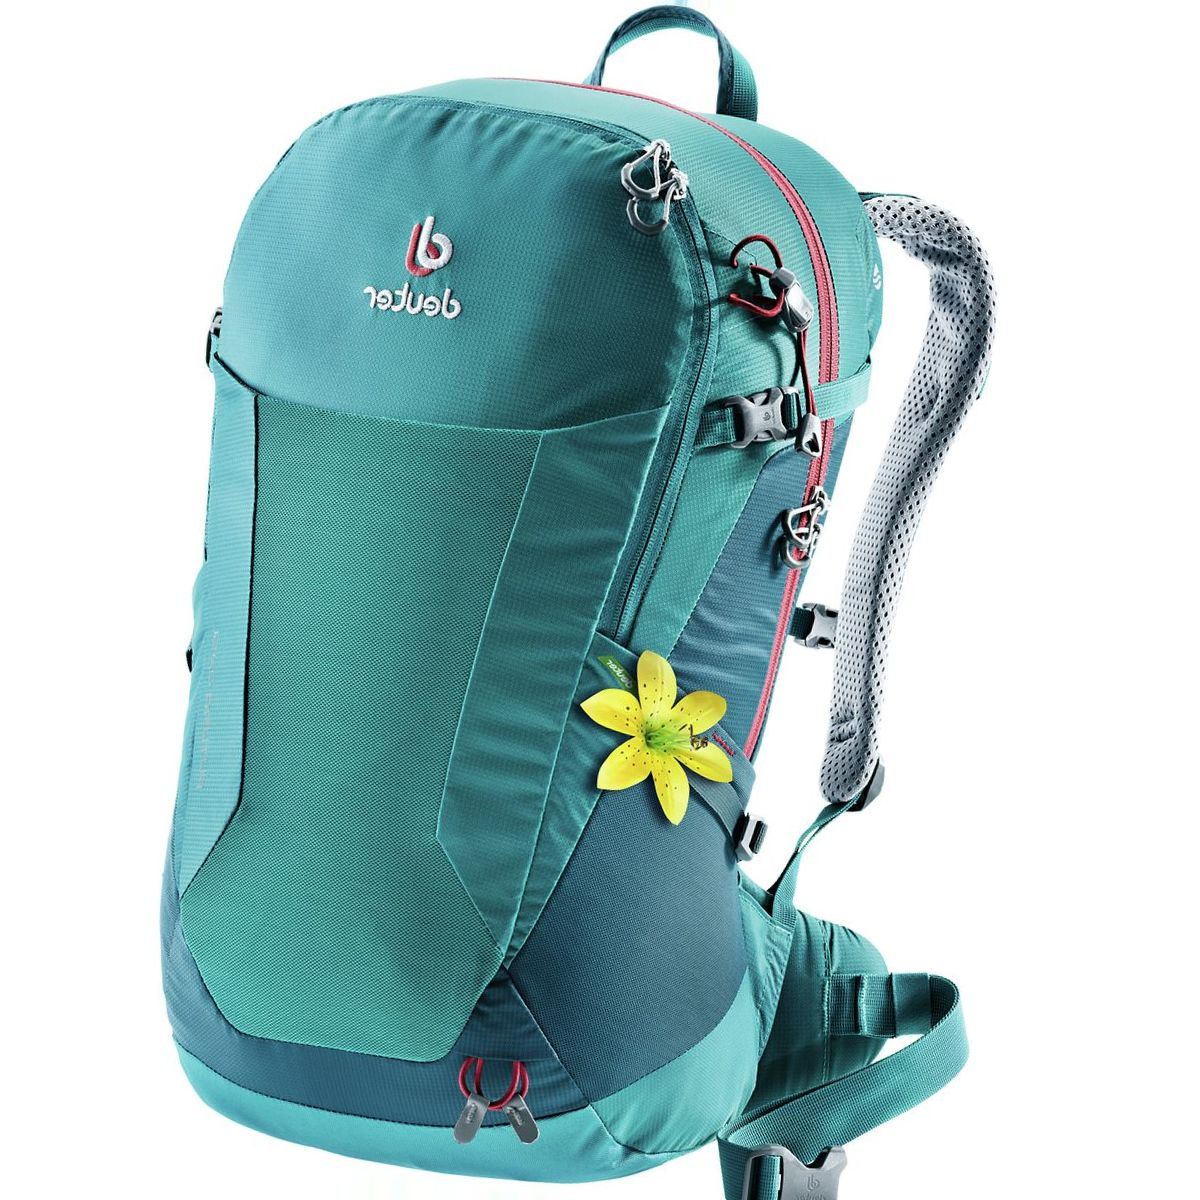 Deuter Futura 22L SL Backpack - Women's